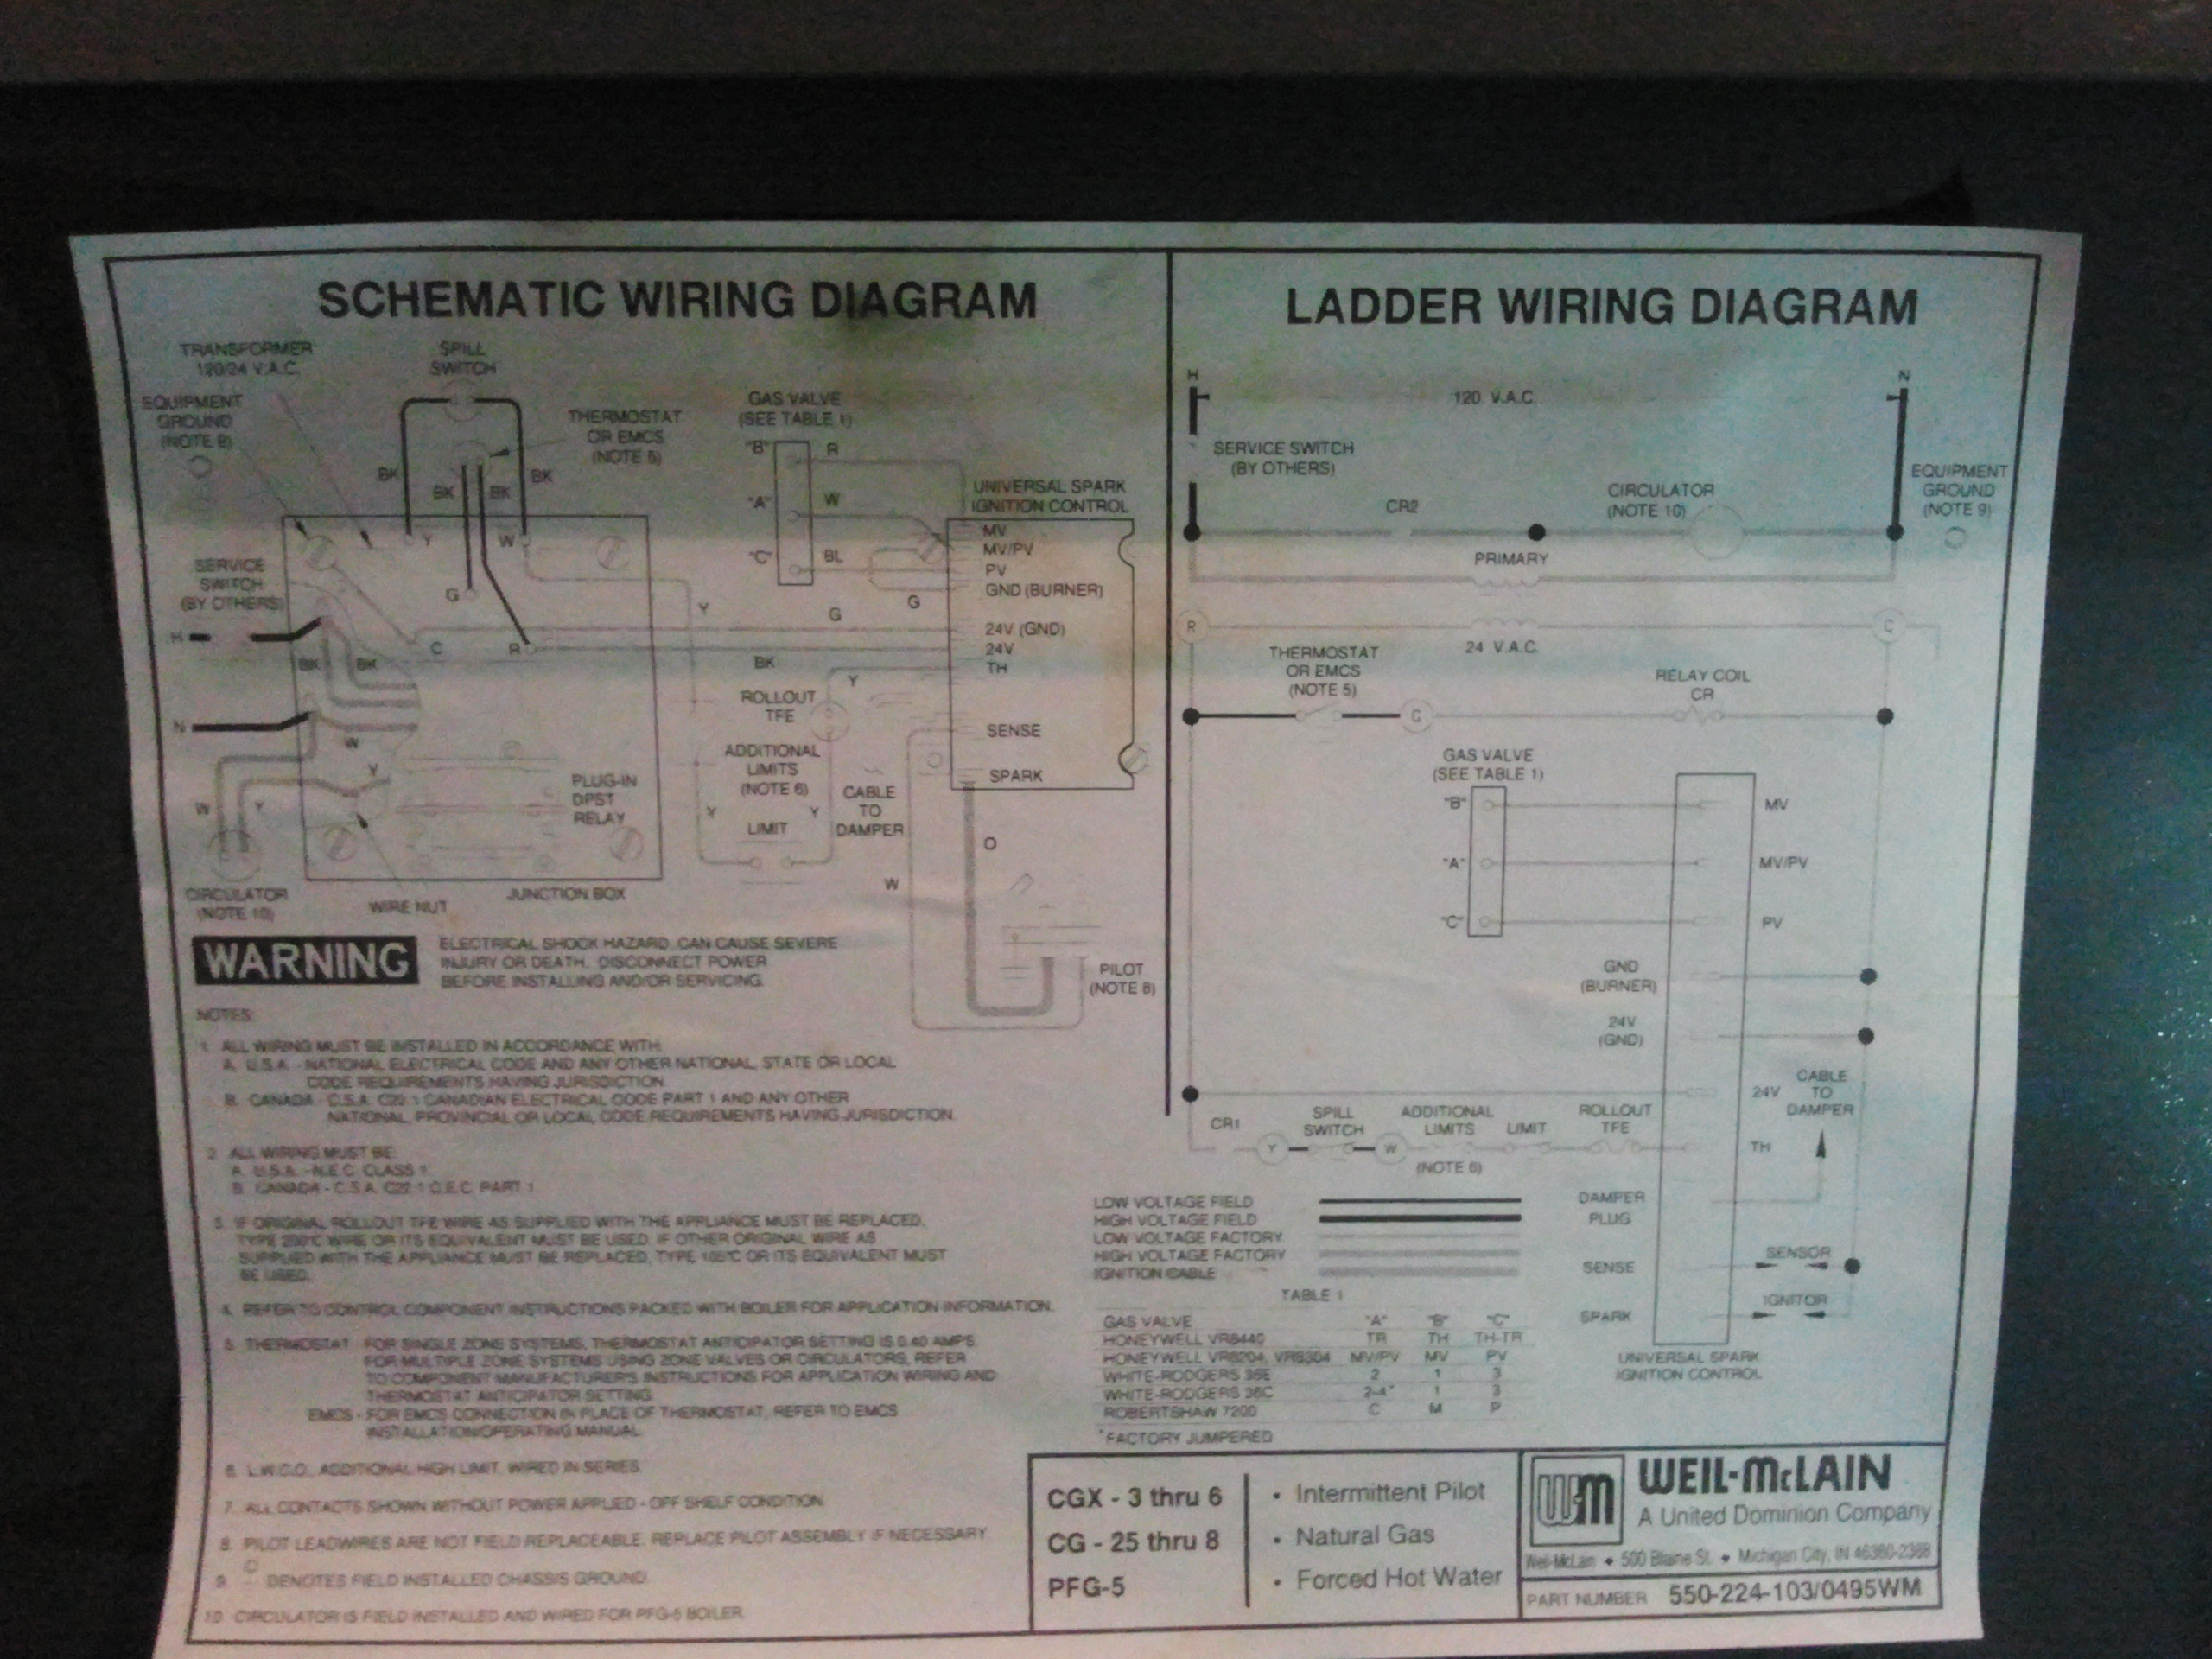 Cool wells mclain furnace wiring diagrams images electrical and cool wells mclain furnace wiring diagrams photos electrical keyboard keysfo Image collections